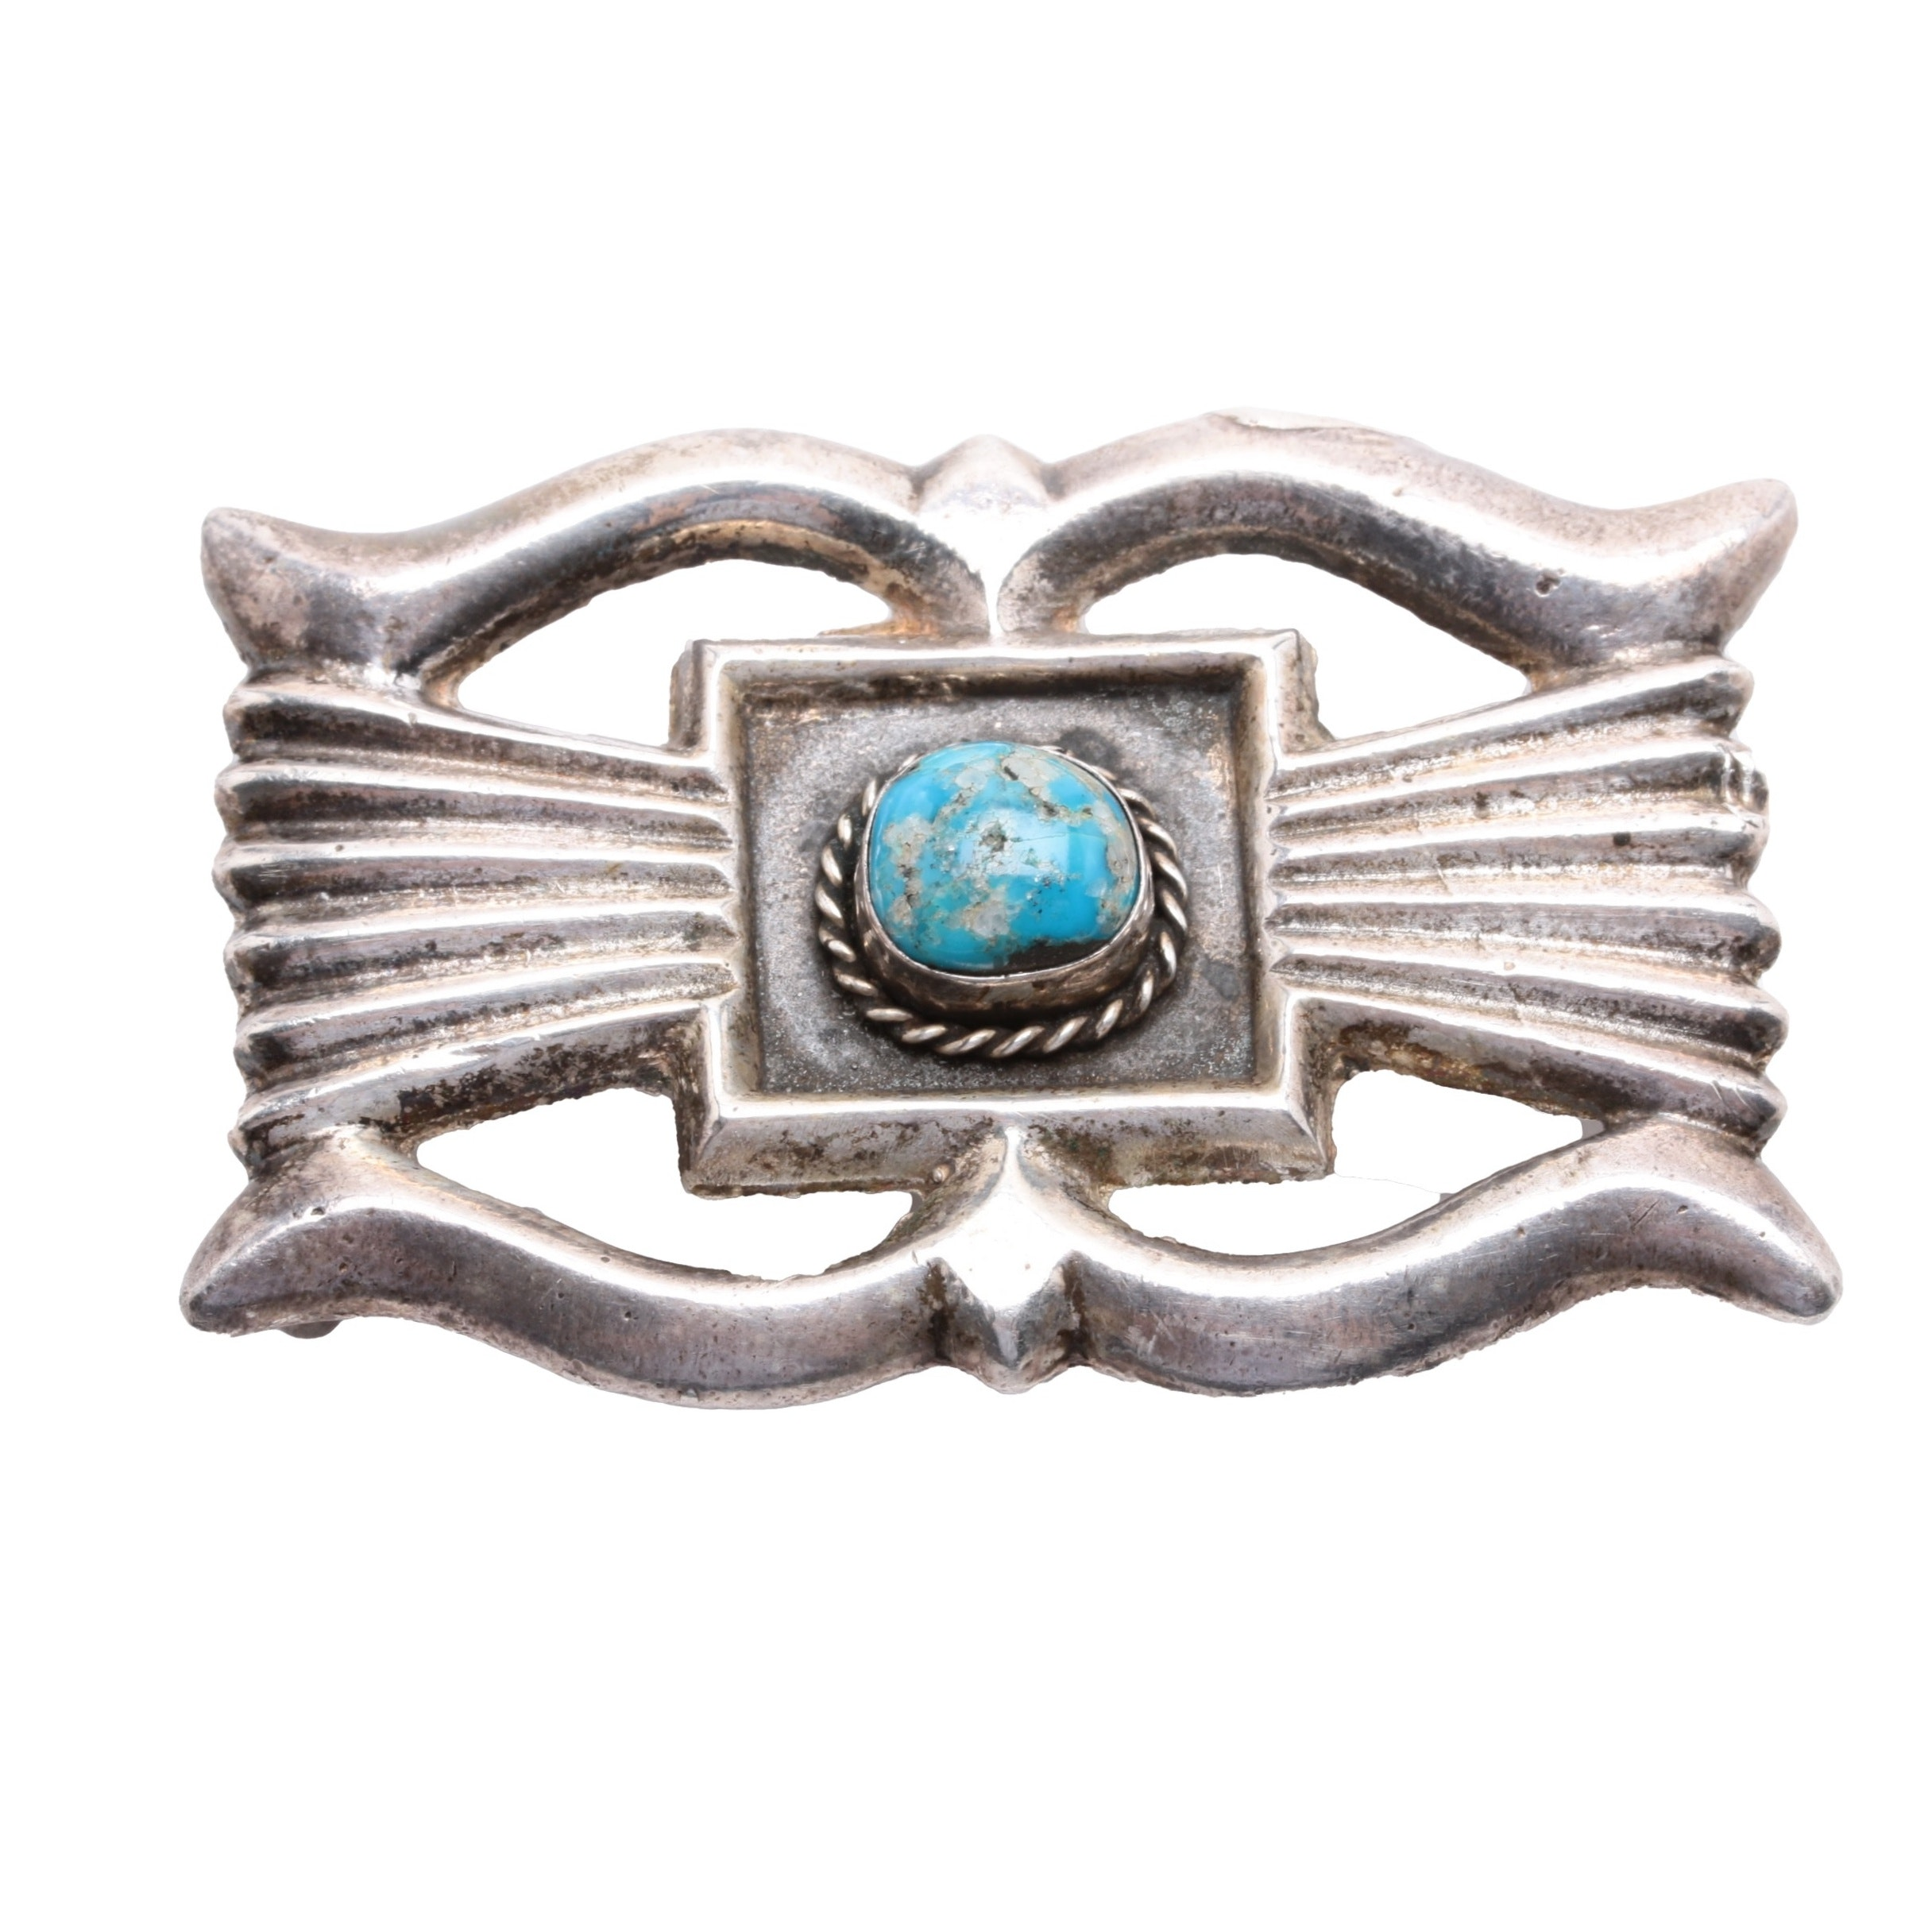 Vintage Sand Cast Navajo Sterling Silver and Turquoise Buckle